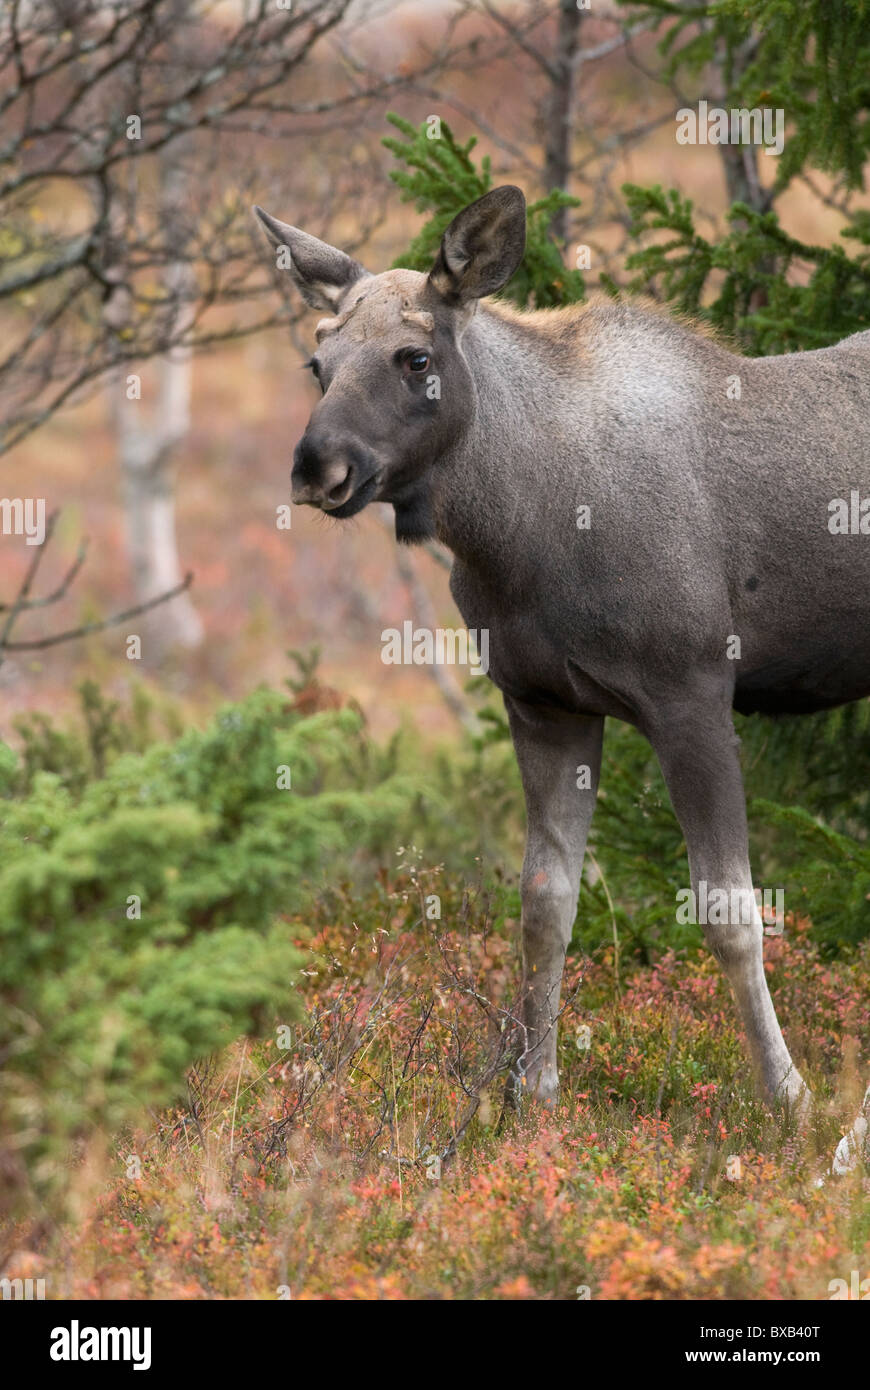 Moose in forest - Stock Image